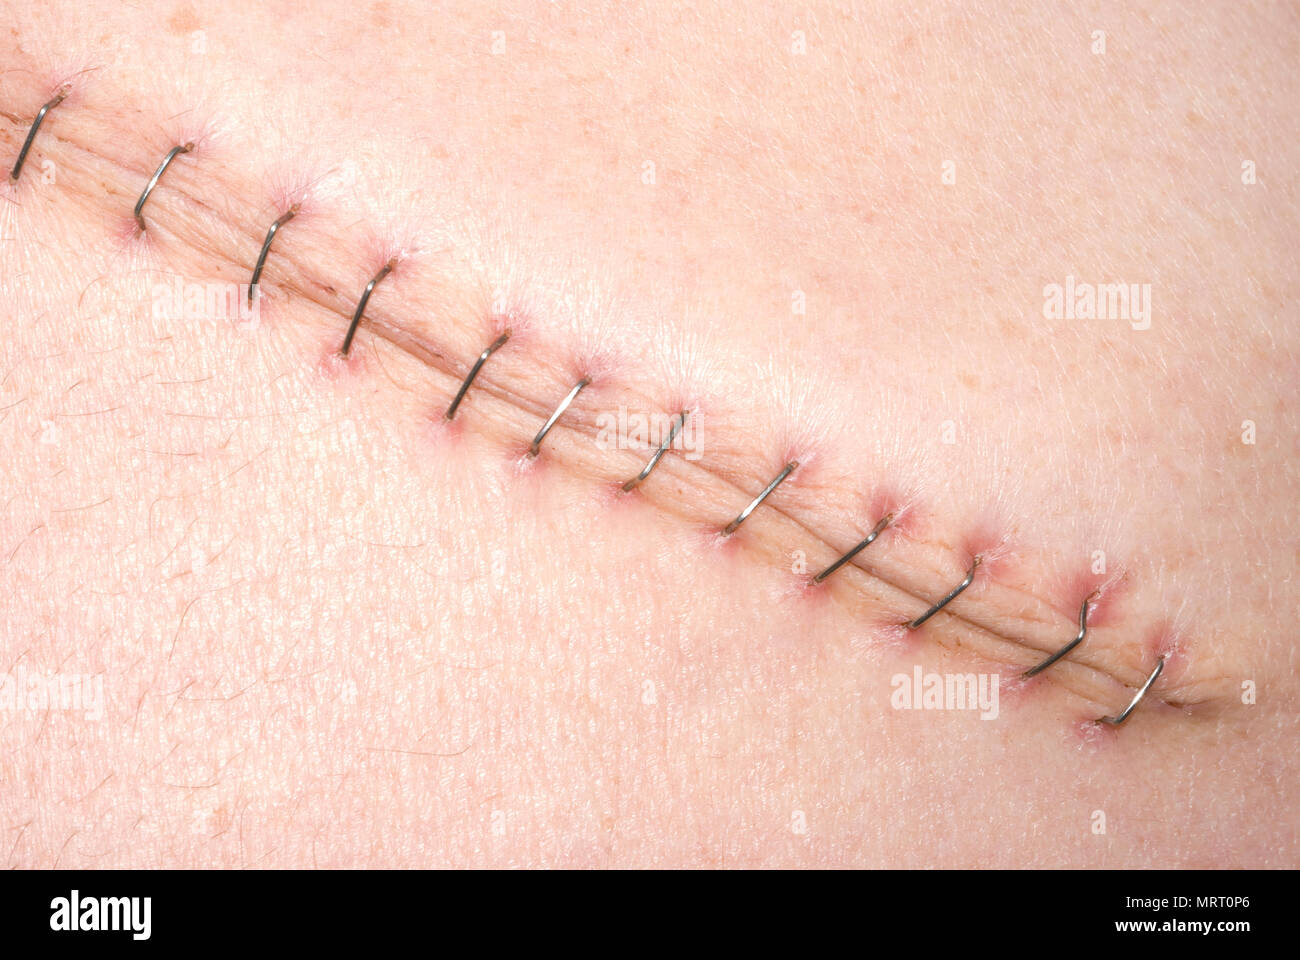 Rooftop Incision - Stock Image